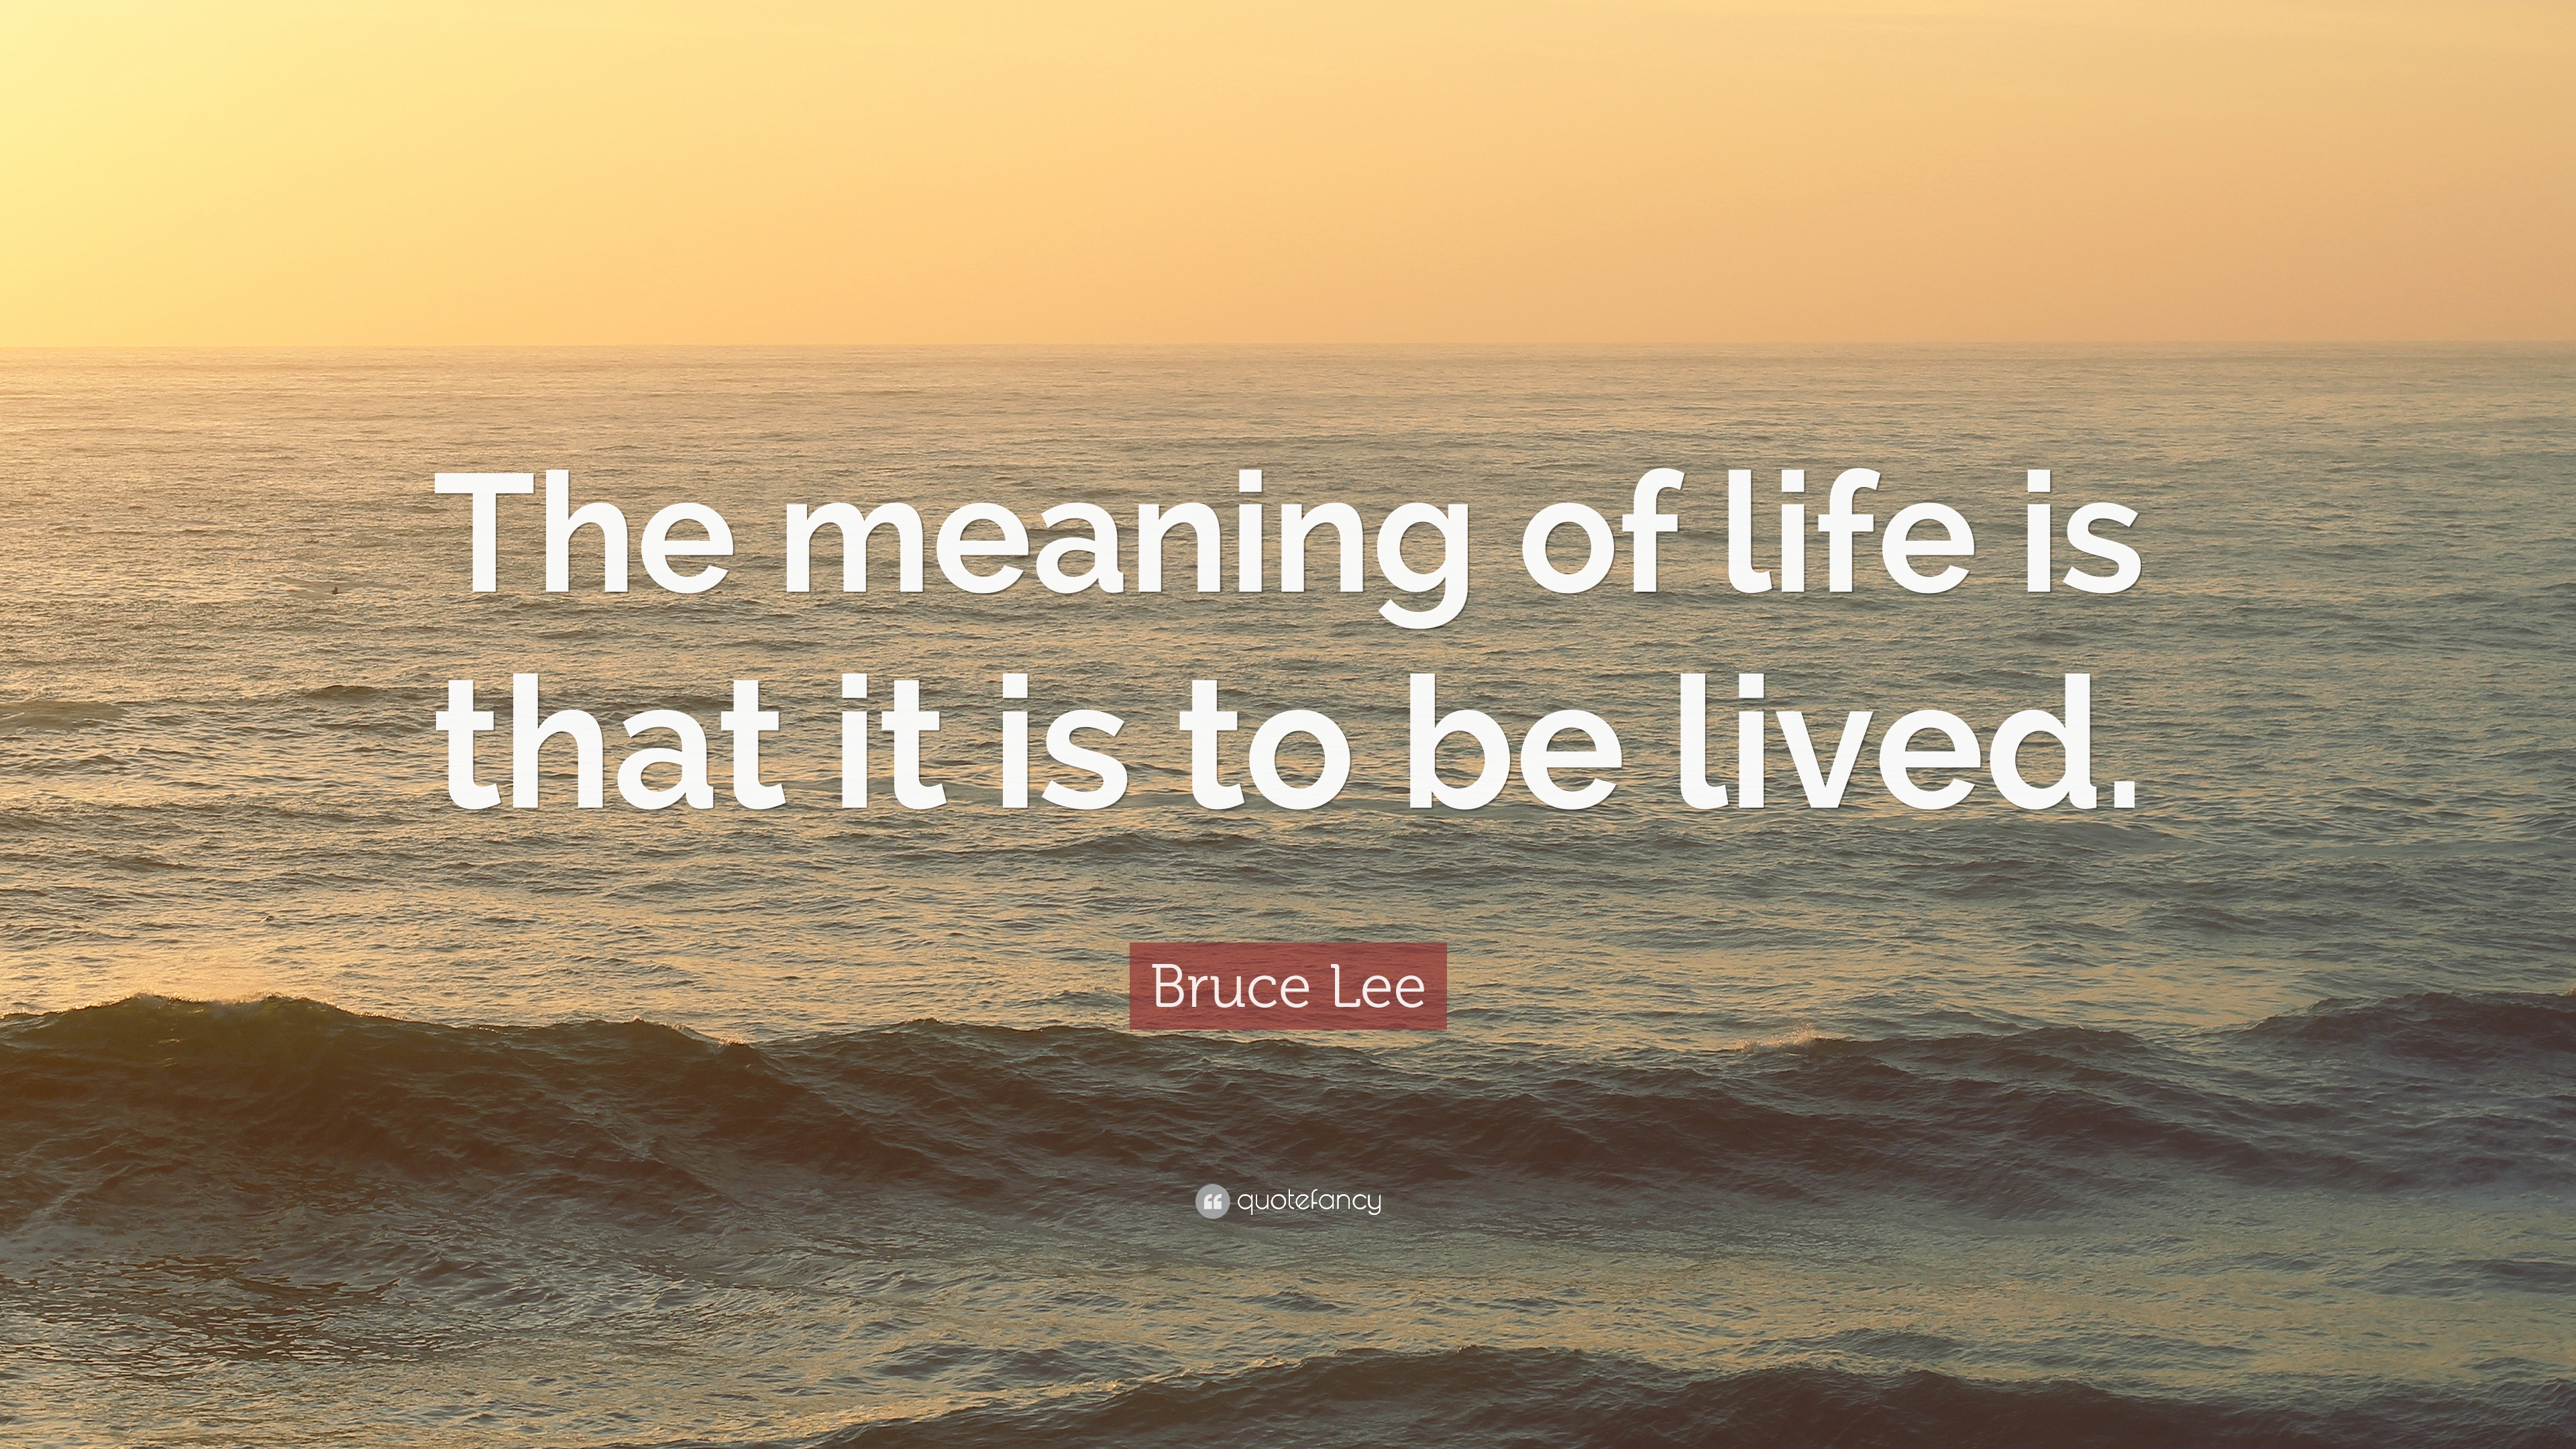 Meaning Of Life Quotes Glamorous Meaning Of Life Quotes 40 Wallpapers  Quotefancy